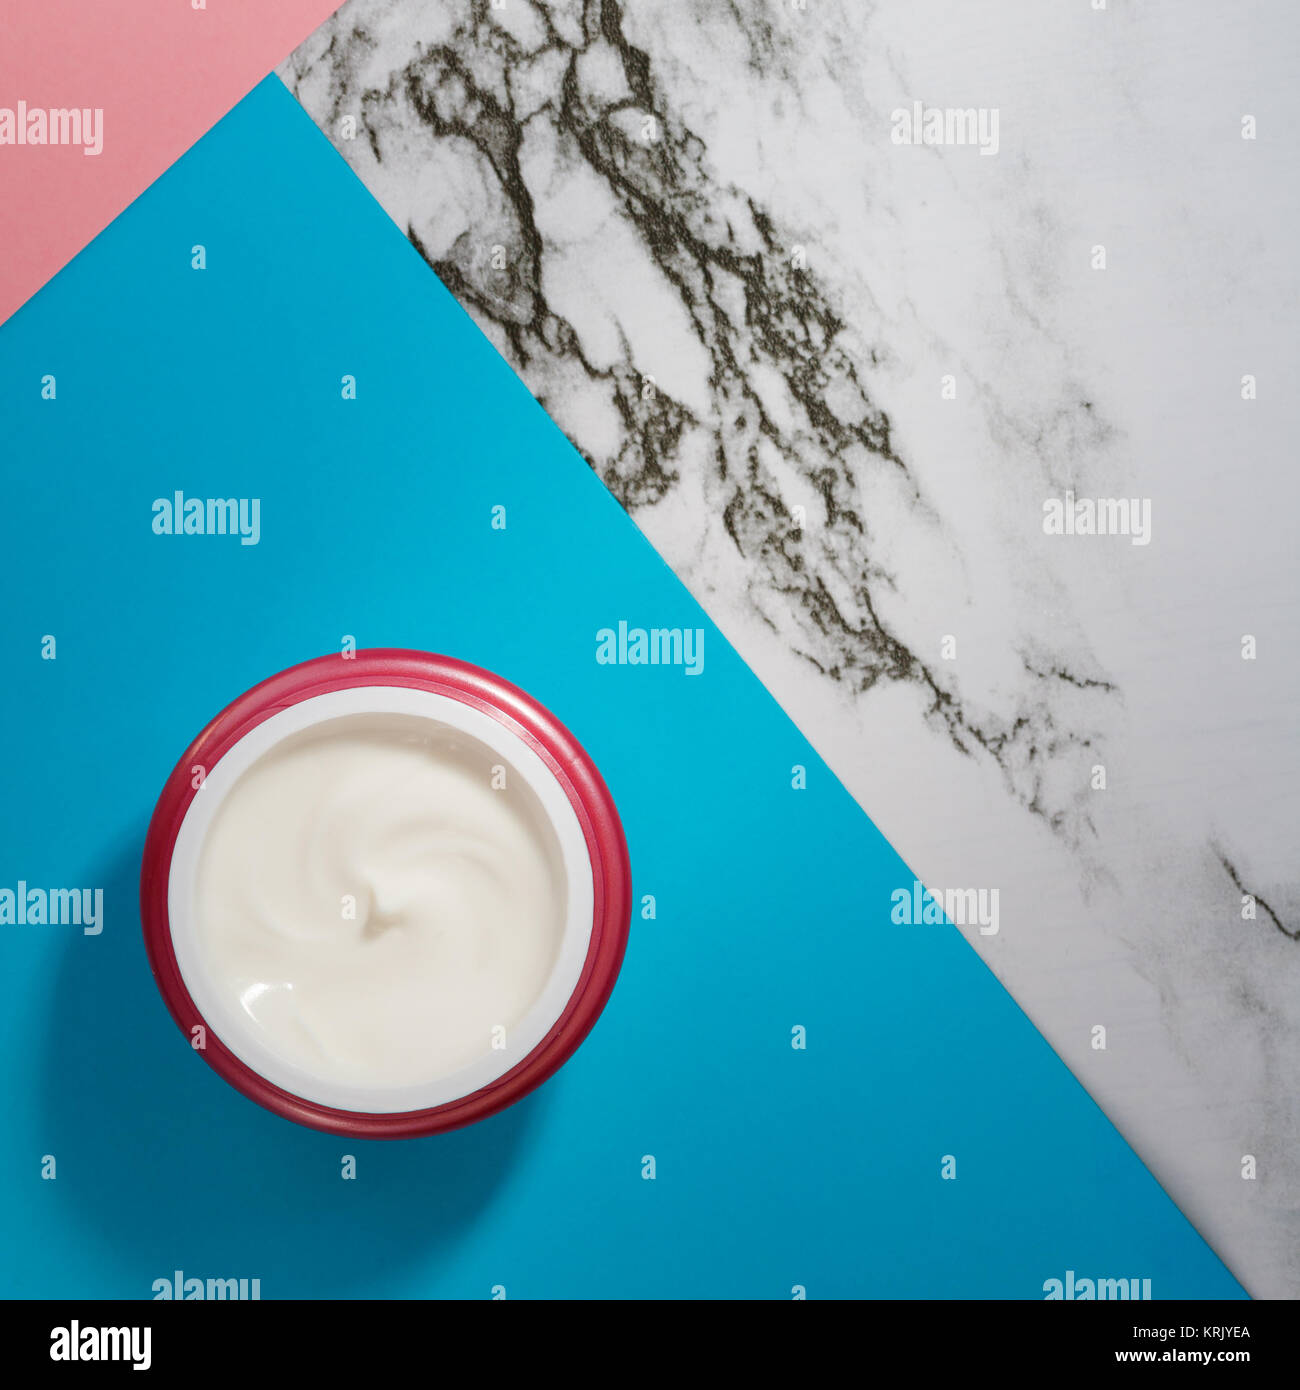 The white cream for skin in a pink container on a geometrical abstract colorful background. View from above. - Stock Image